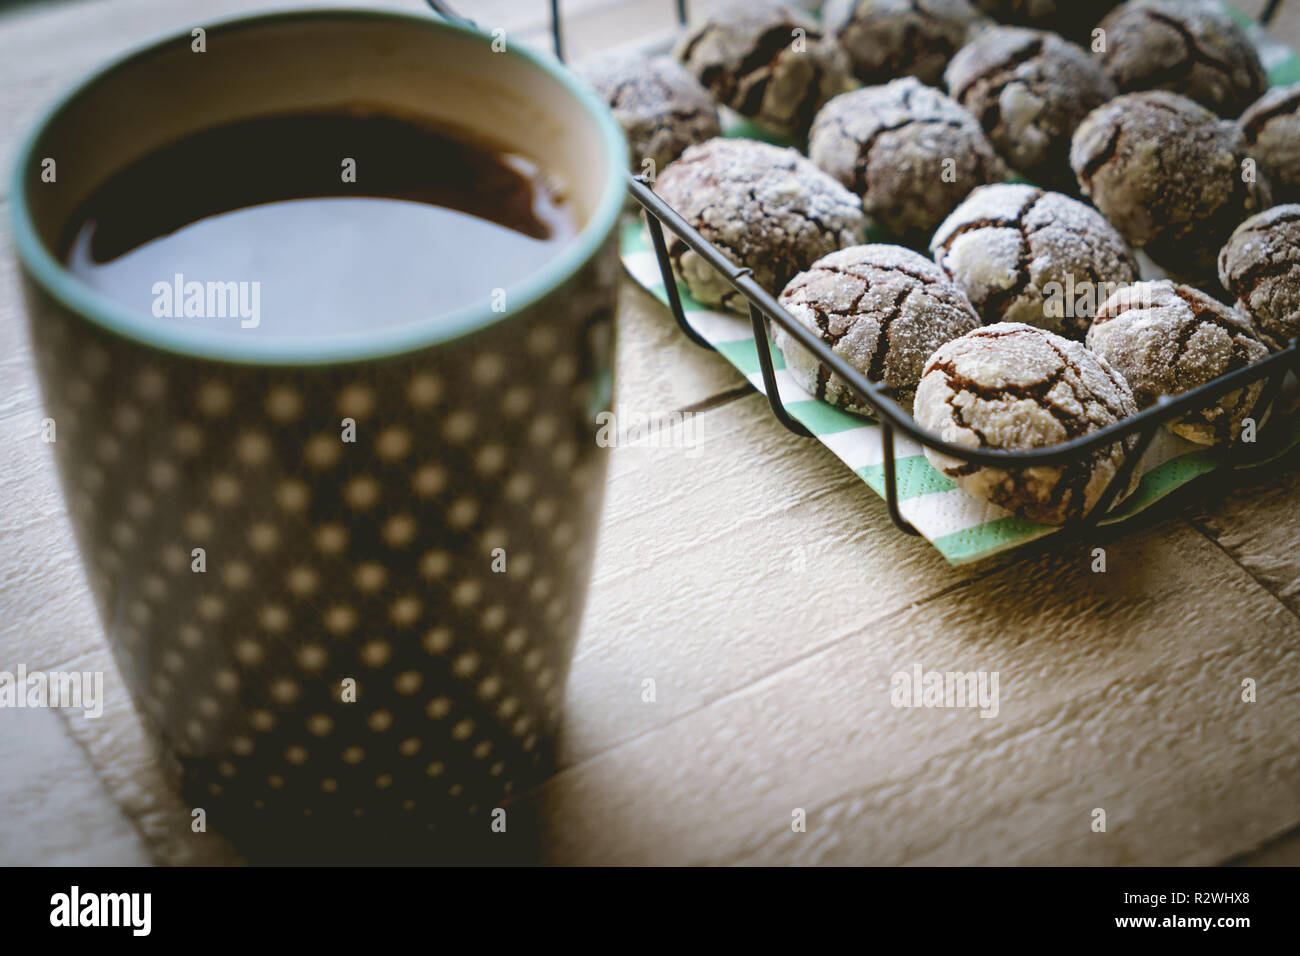 Chocolate crinkle cookies in a basket with a cup of tea on a wooden table. Close up view. Landscape format. - Stock Image